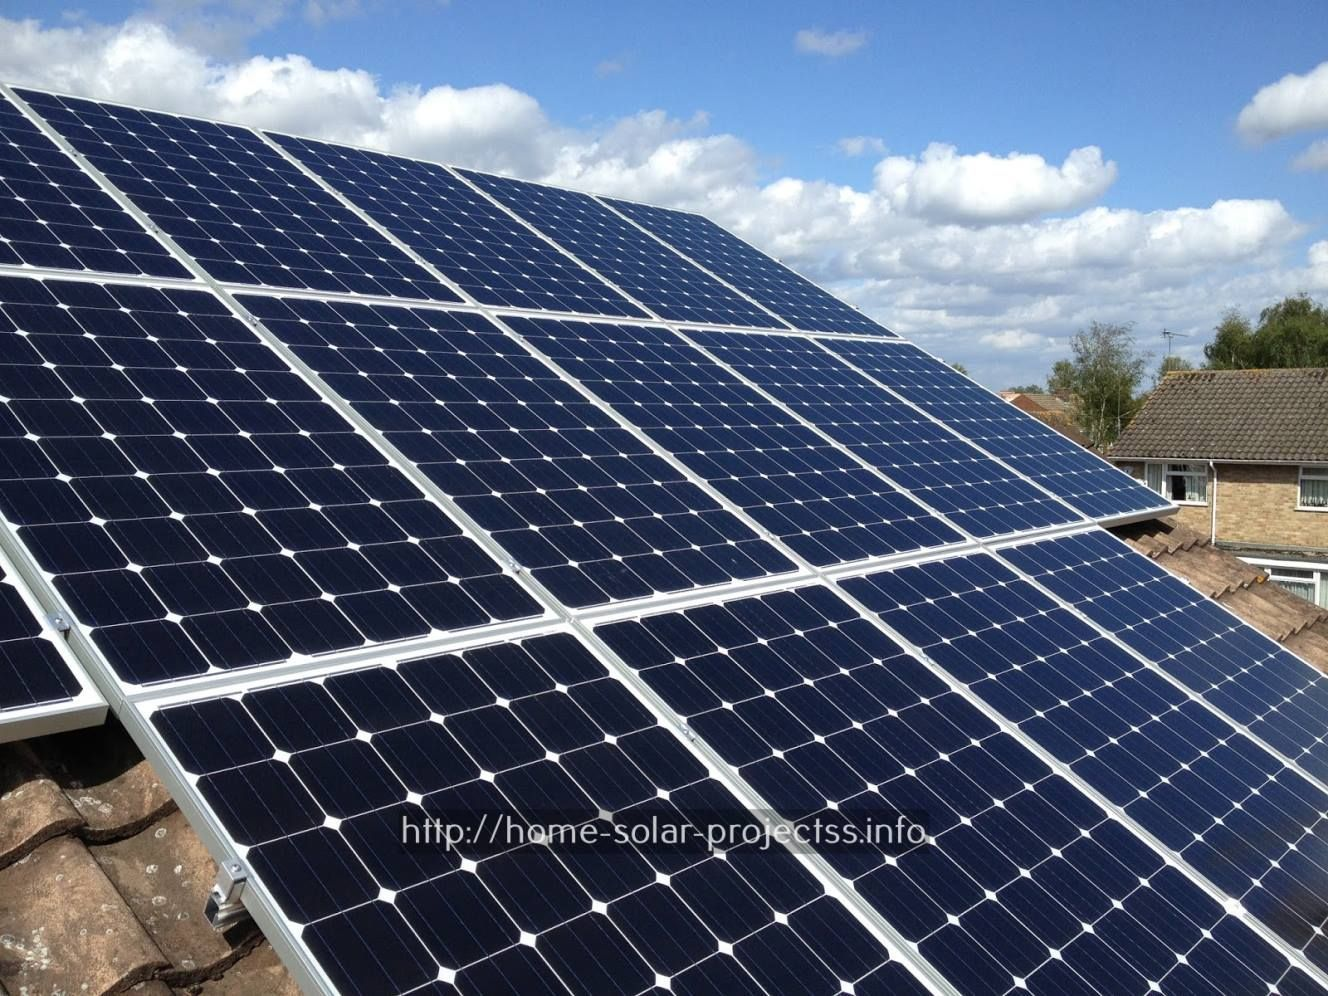 How To Make My Home Solar Powered Solar Panels Drawing How To Set Up A Solar Panel System At Home 1651278184 Best Solar Panels Solar Panels Used Solar Panels